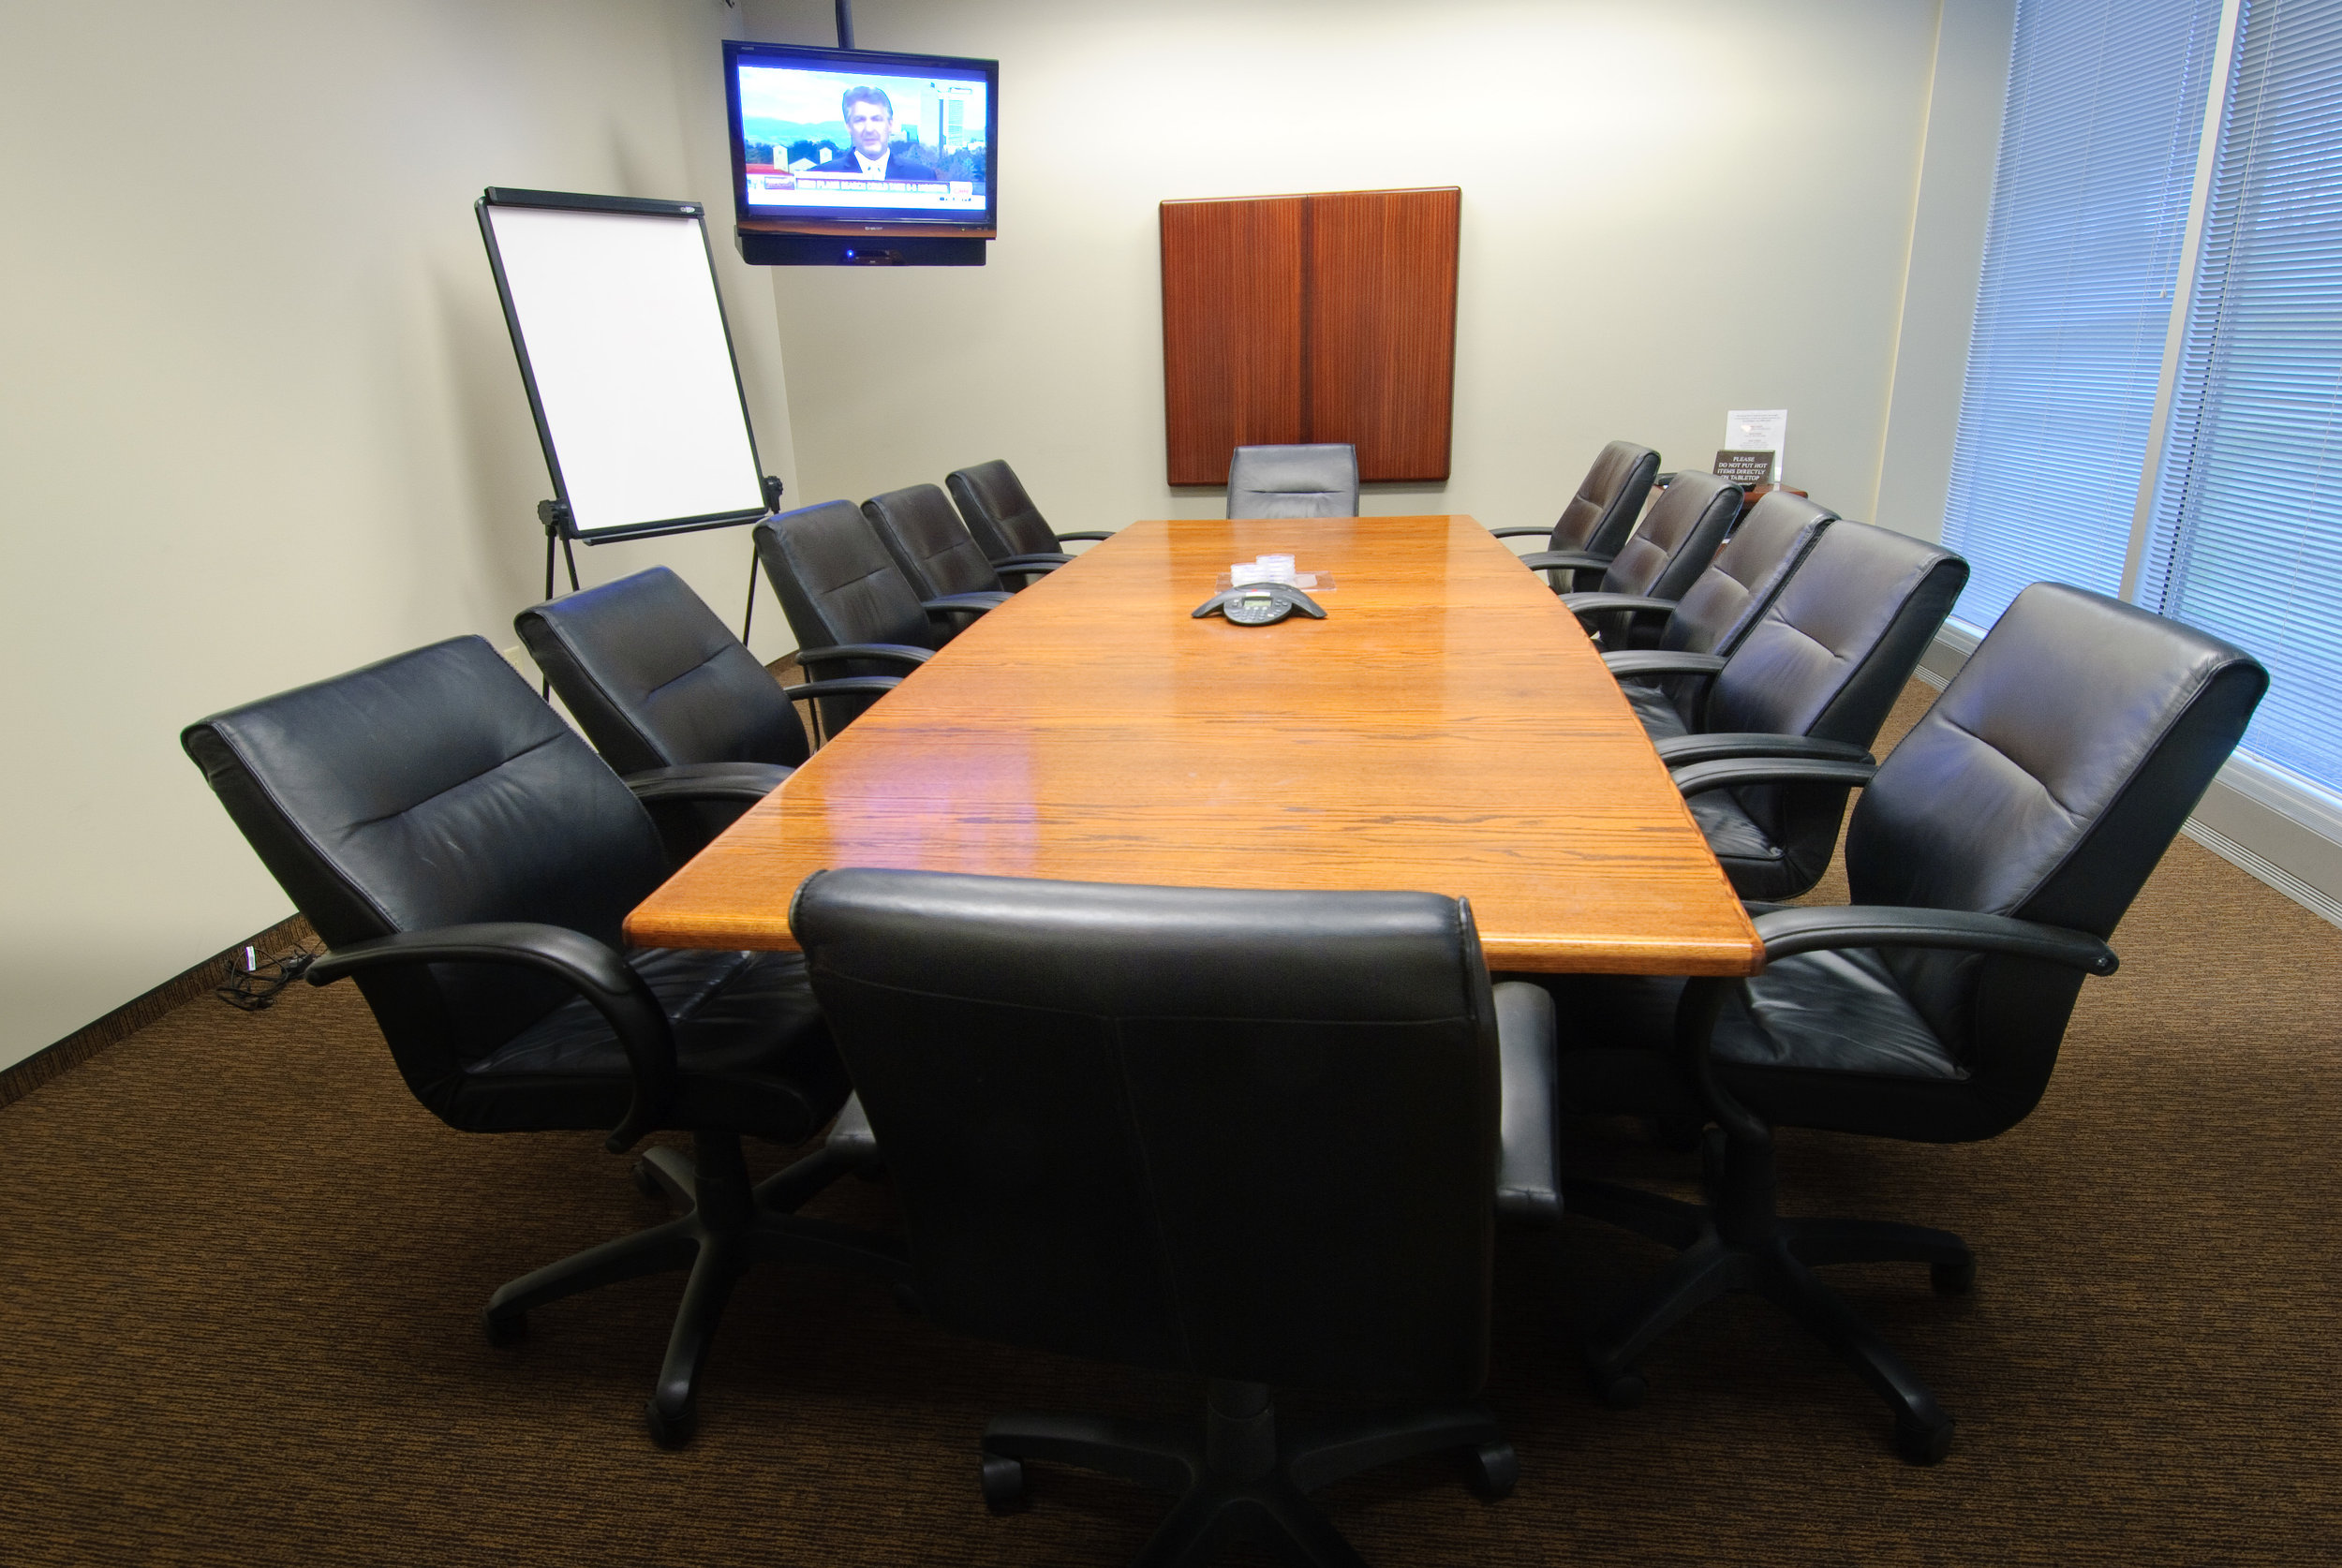 8400-North-Conference-Room.jpg